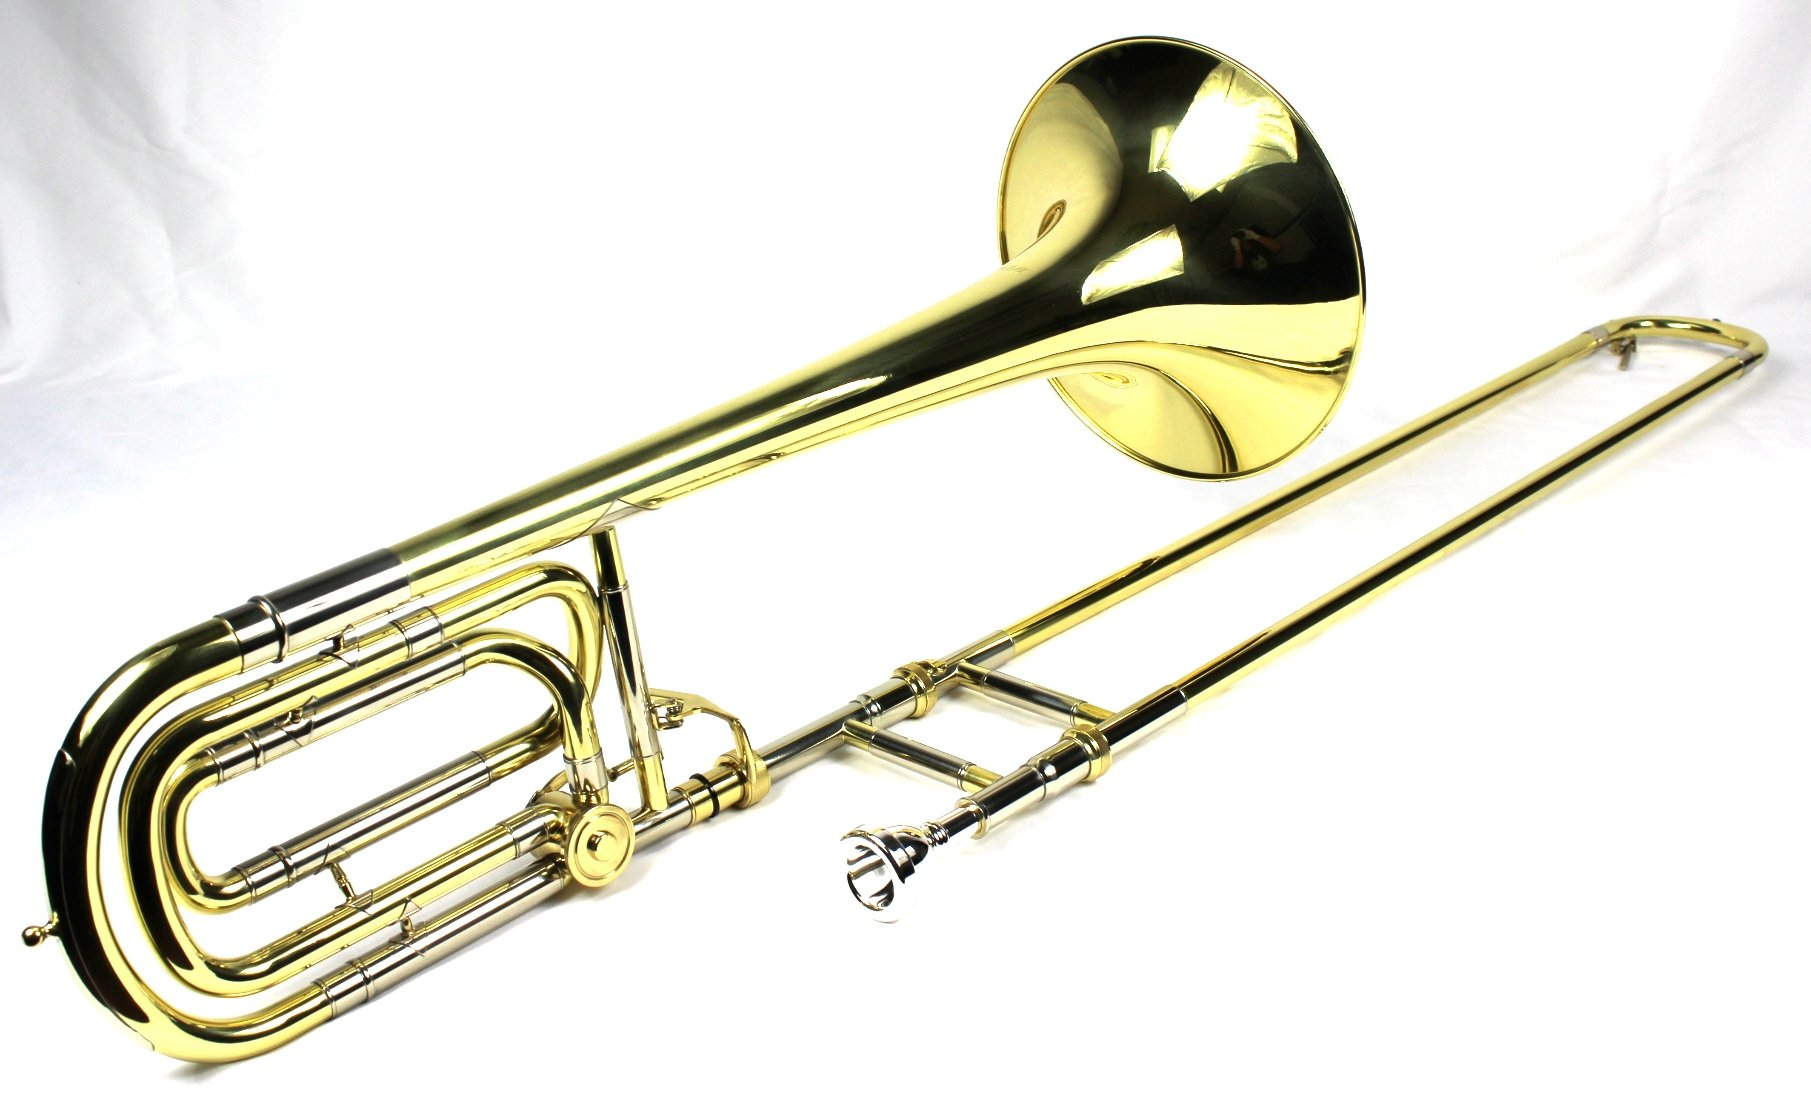 Brand New Bb/F Bass Trombone w/ Case and Mouthpiece- Gold Lacquer Finish by Moz (Image #2)